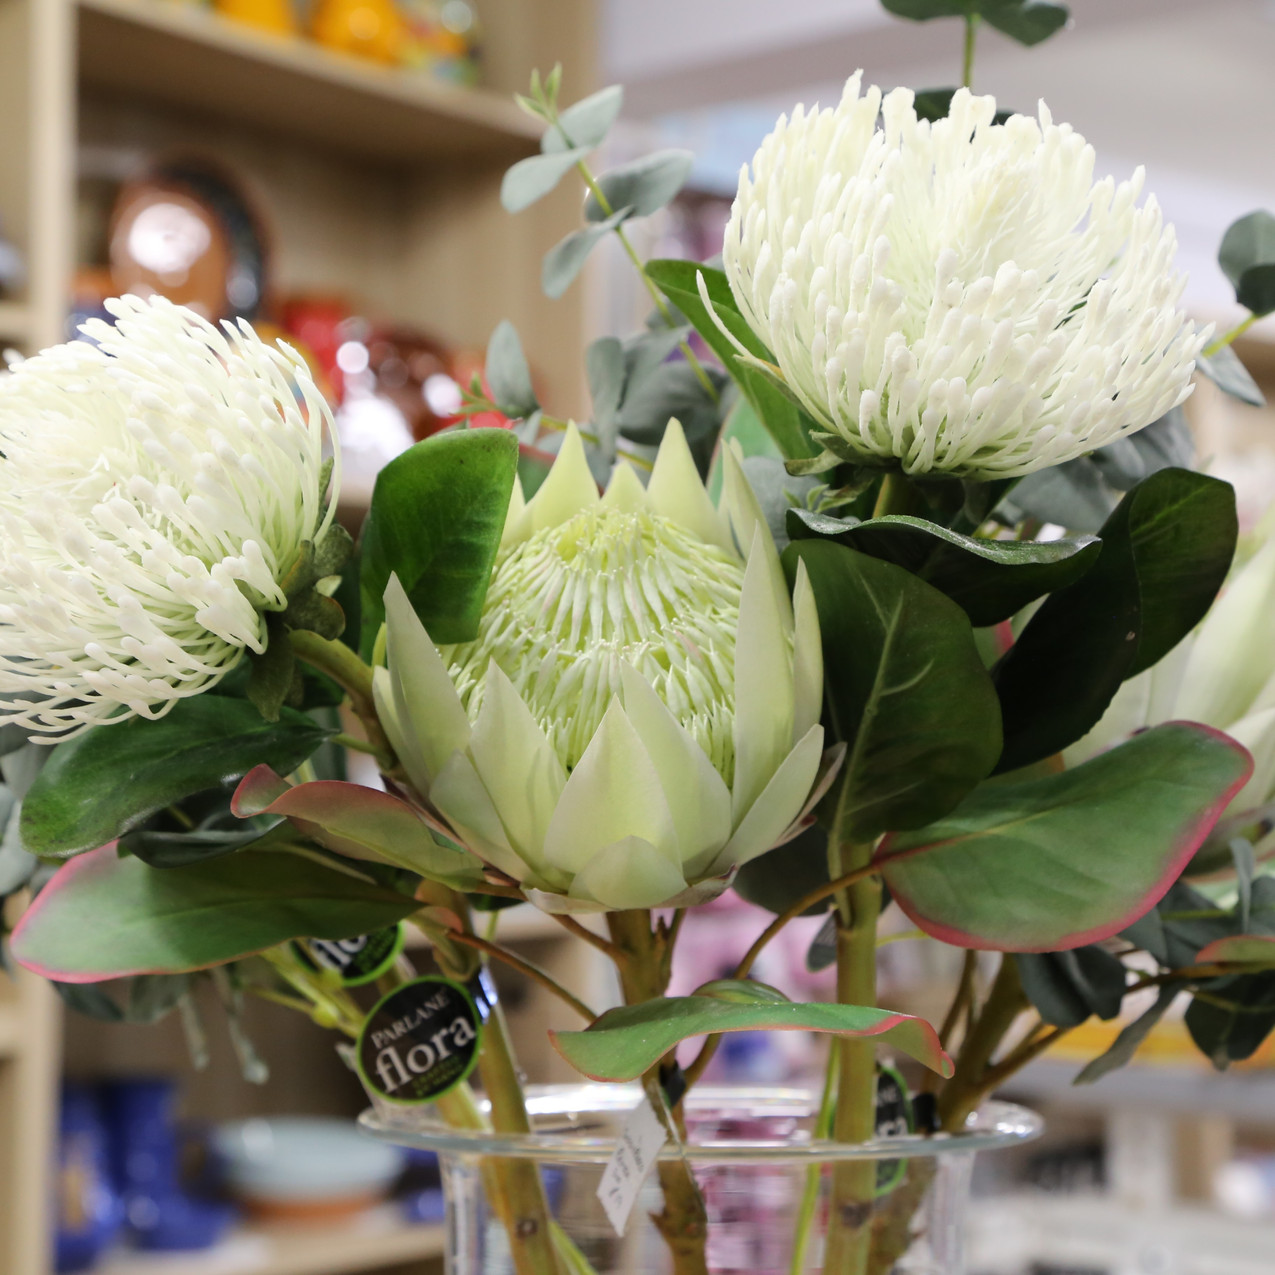 A selection of artifical flowers